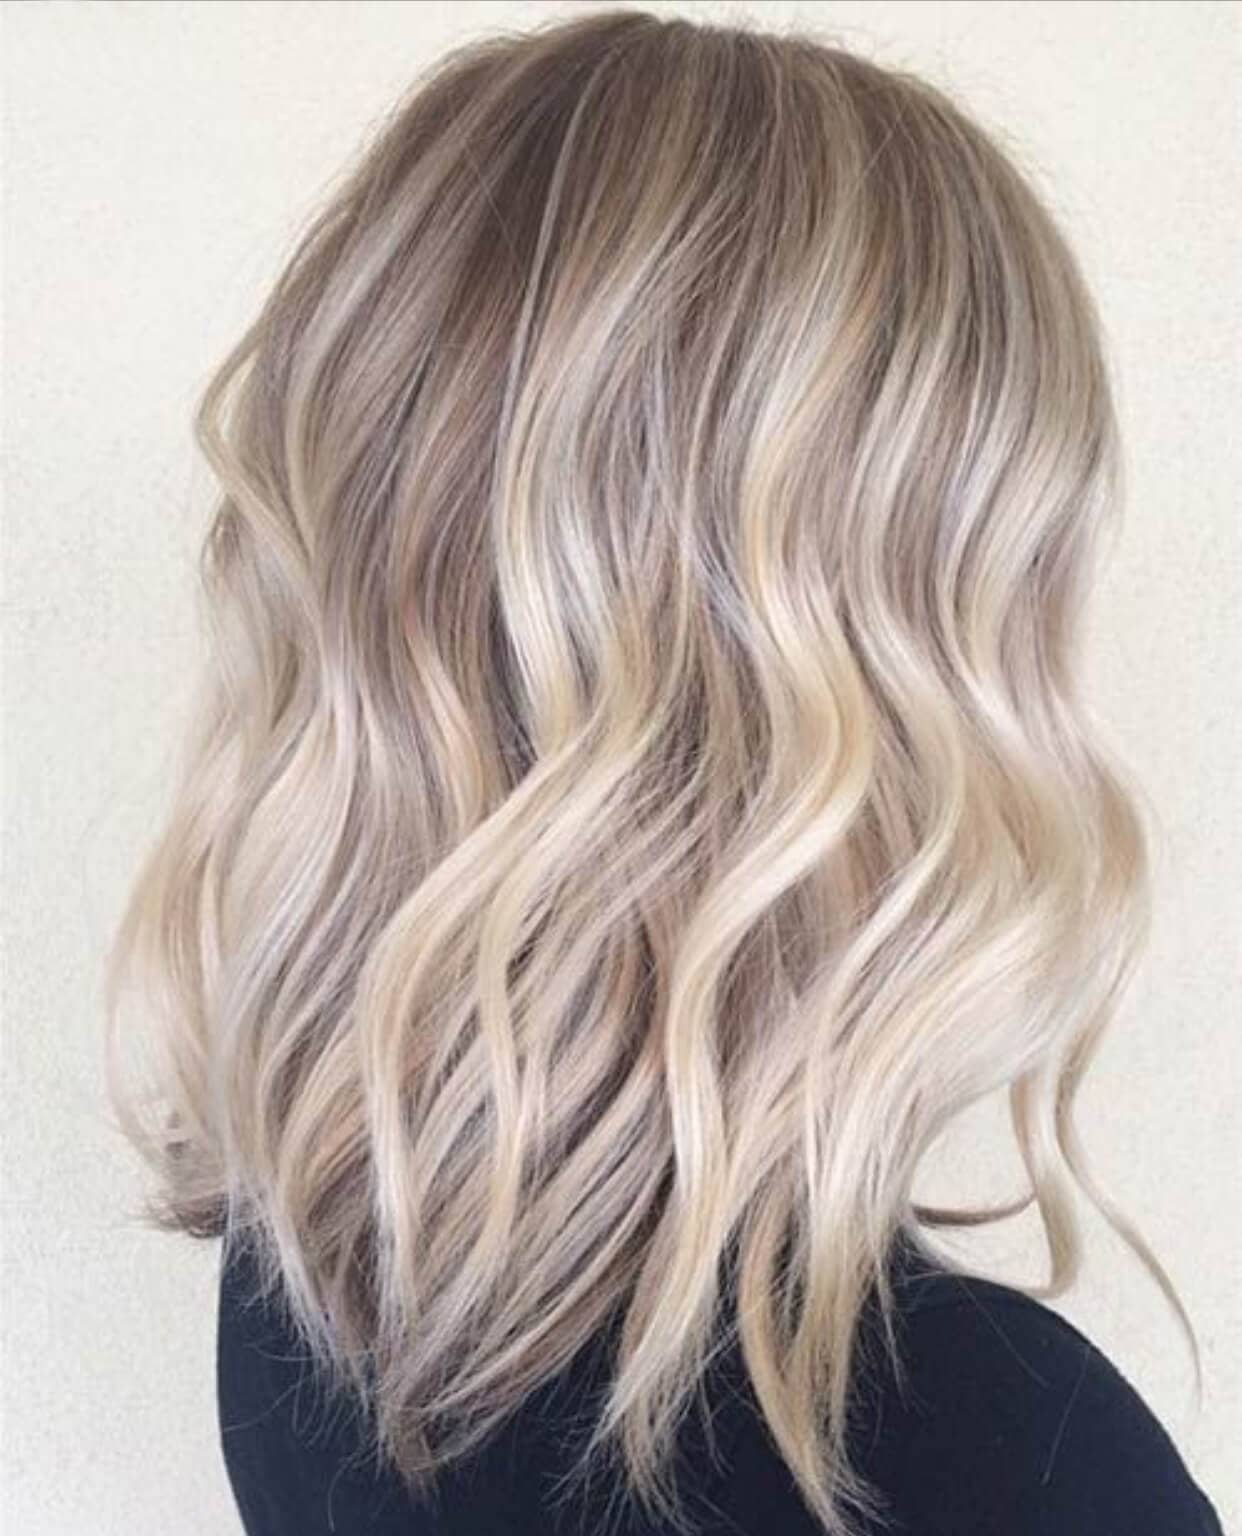 Super ashy highlighted strands blended throughout